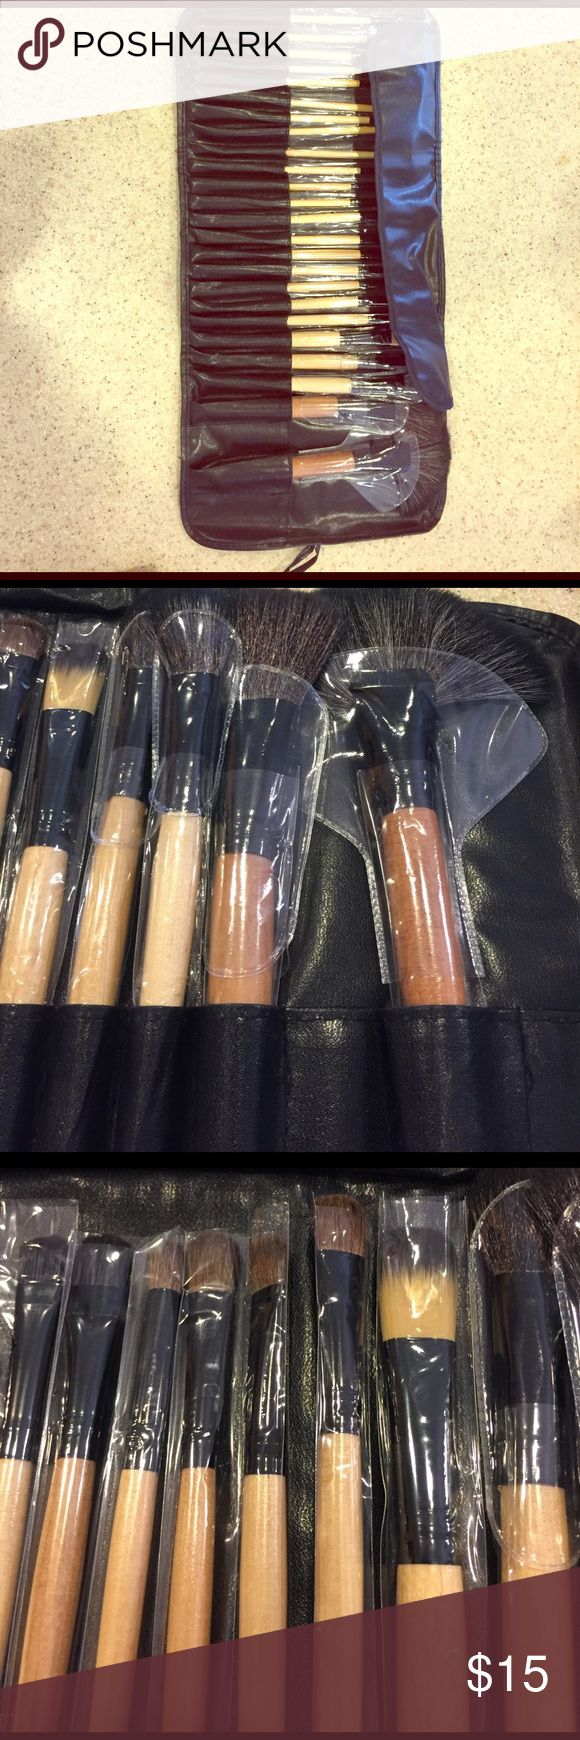 New 24 piece make up brush kit black roll up kit This is a brand-new 24 please I lip brown face make up brush kit brushes are good quality very soft new in package come in black vinyl roll a bag a scene and picks the perfect brush kit for on the go Makeup Brushes & Tools